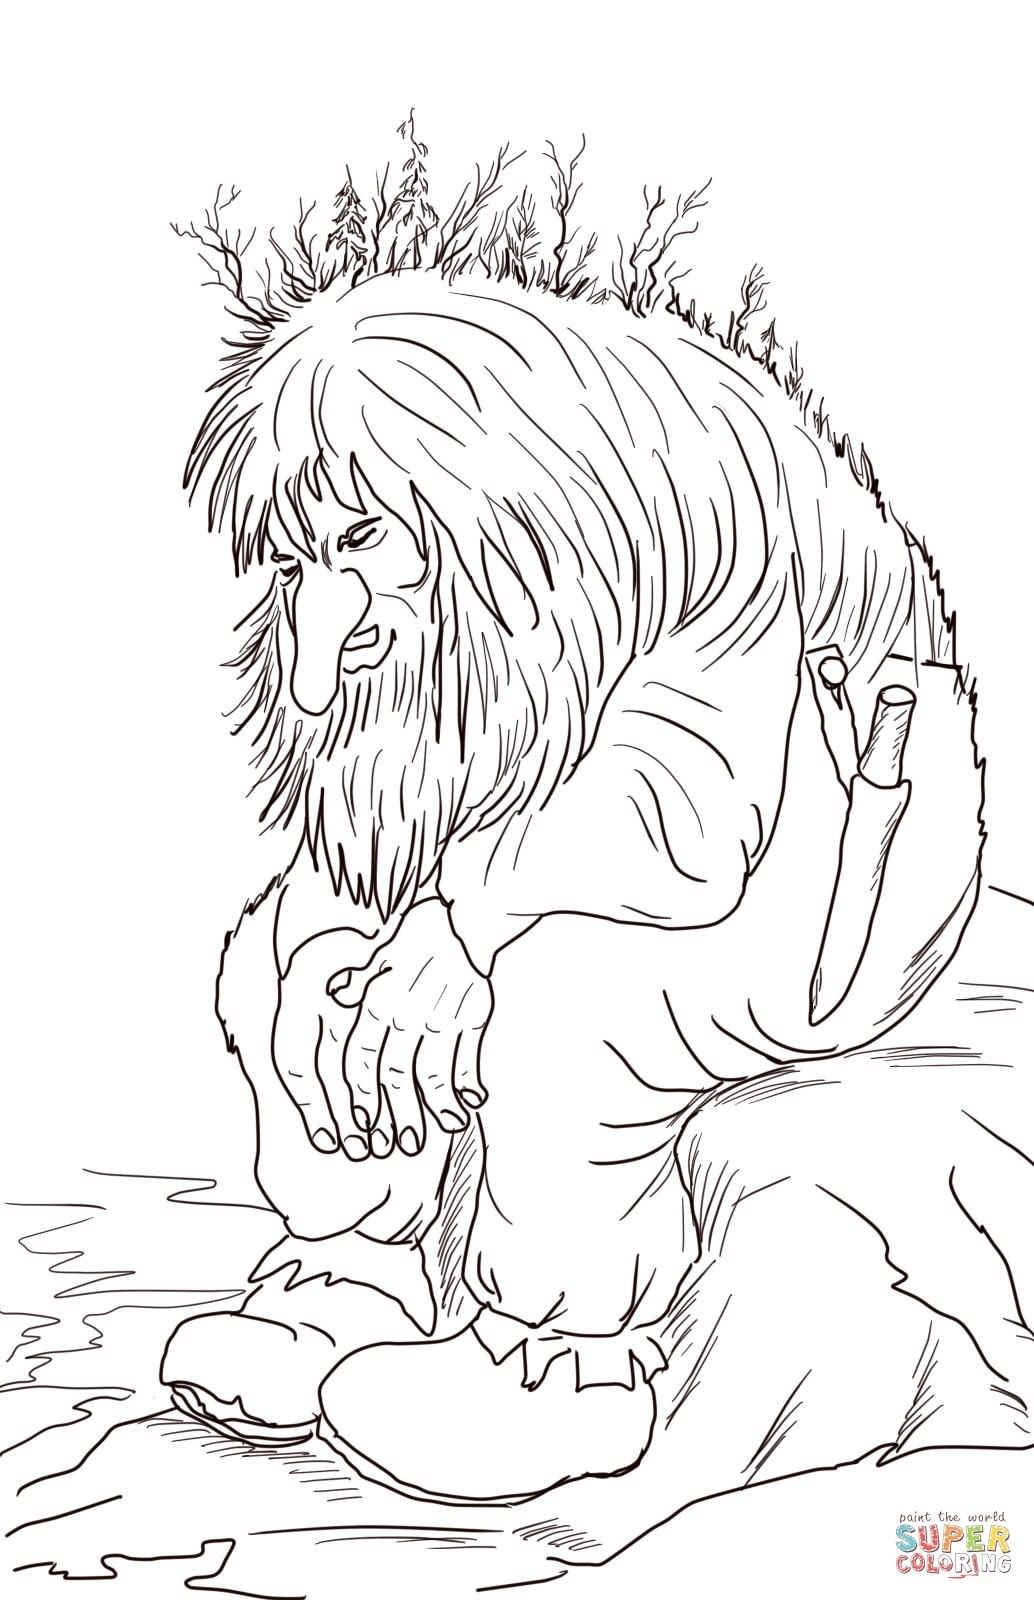 Norwegian Troll coloring page | SuperColoring.com | Digital Stamps ...